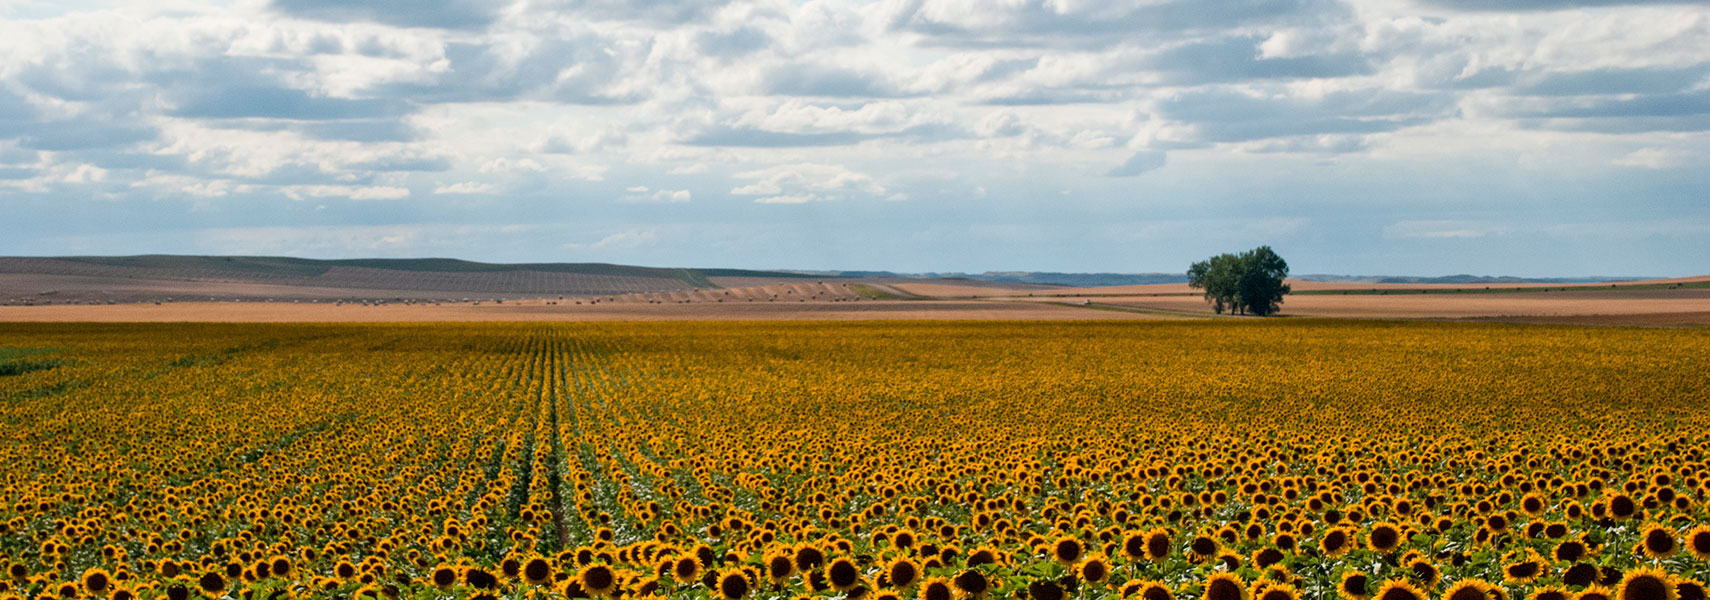 Sunflower field in North Dakota